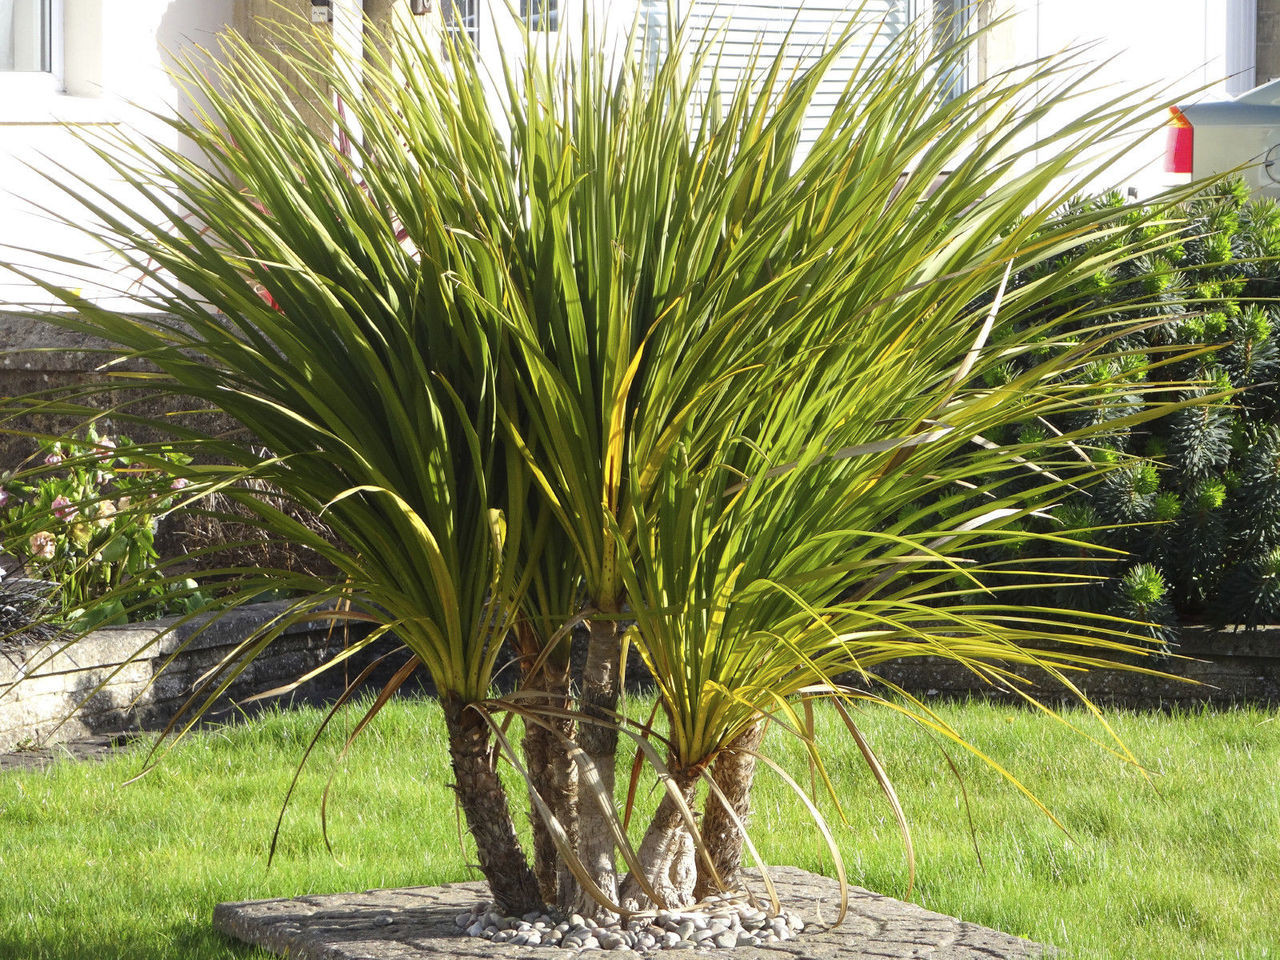 2 Cordyline Australis Plants Cabbage Palm Trees 4060cm Tall in